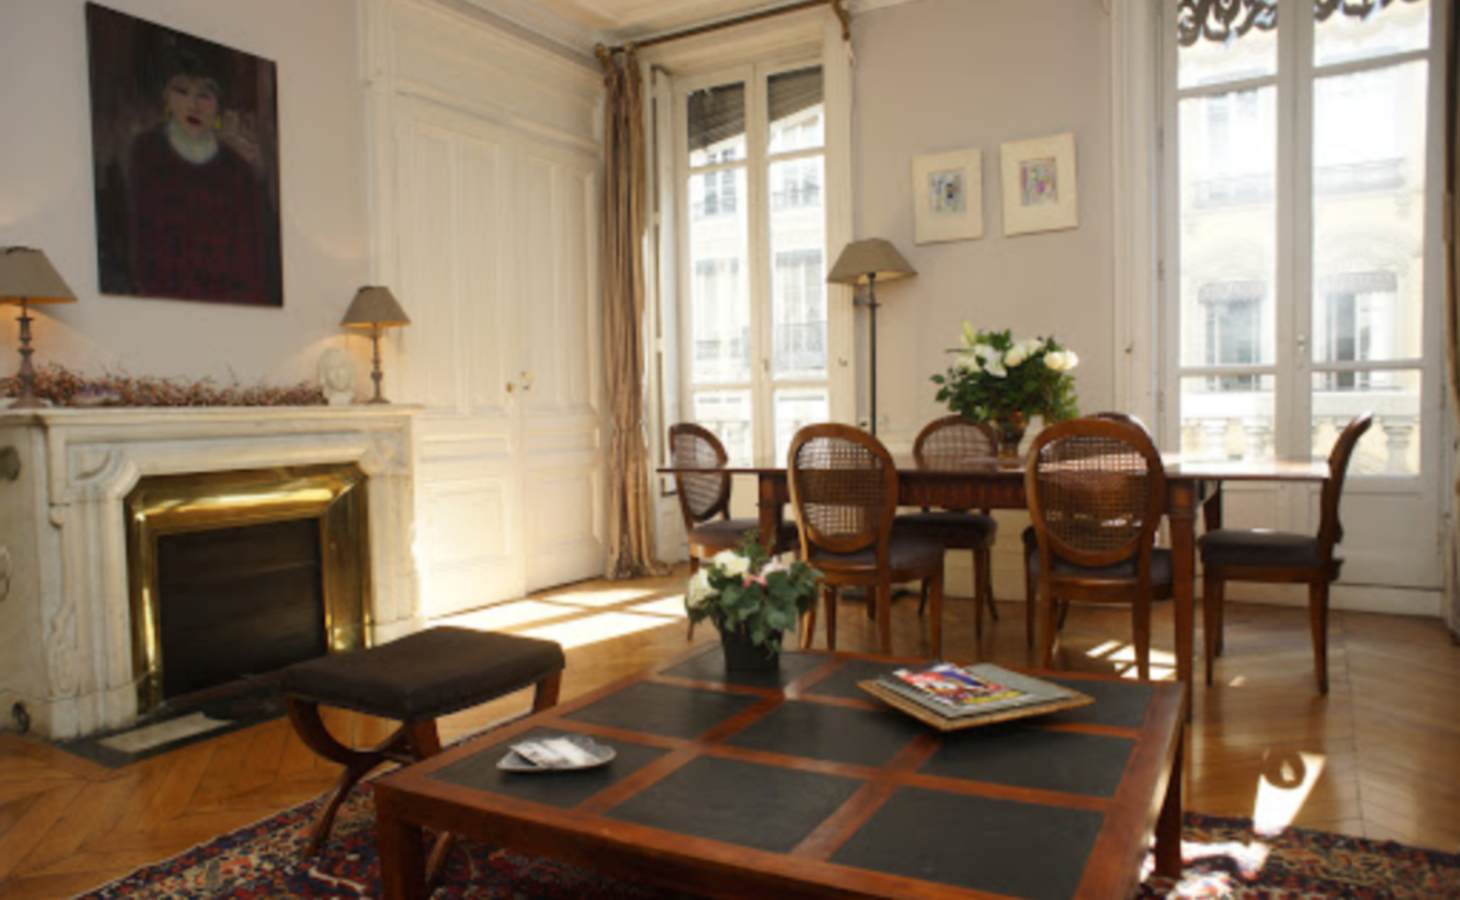 A living room filled with furniture and a fire place at Suite Edouard Herriot.